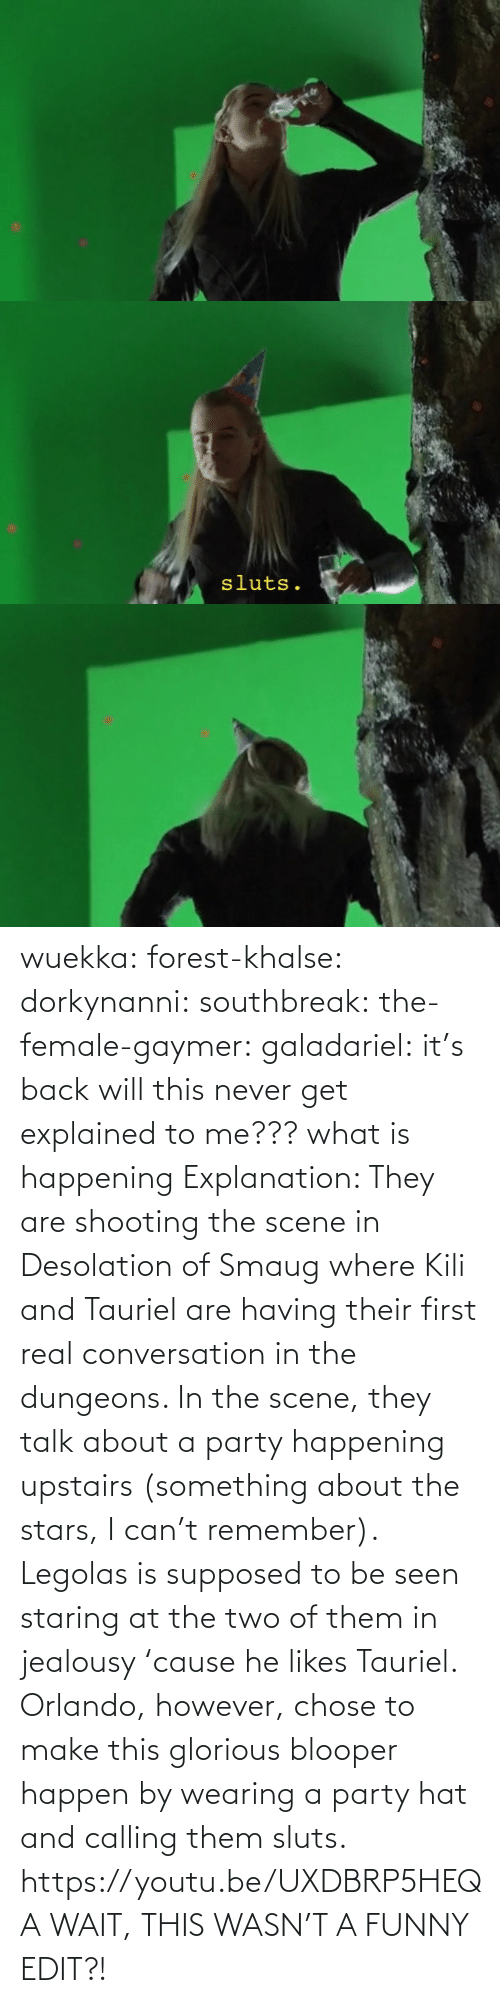 youtube.com: wuekka: forest-khalse:   dorkynanni:  southbreak:   the-female-gaymer:   galadariel:  it's back   will this never get explained to me???    what is happening    Explanation:  They are shooting the scene in Desolation of Smaug where Kili and Tauriel are having their first real conversation in the dungeons.  In the scene, they talk about a party happening upstairs (something about the stars, I can't remember). Legolas is supposed to be seen staring at the two of them in jealousy 'cause he likes Tauriel.  Orlando, however, chose to make this glorious blooper happen by wearing a party hat and calling them sluts.    https://youtu.be/UXDBRP5HEQA    WAIT, THIS WASN'T A FUNNY EDIT?!